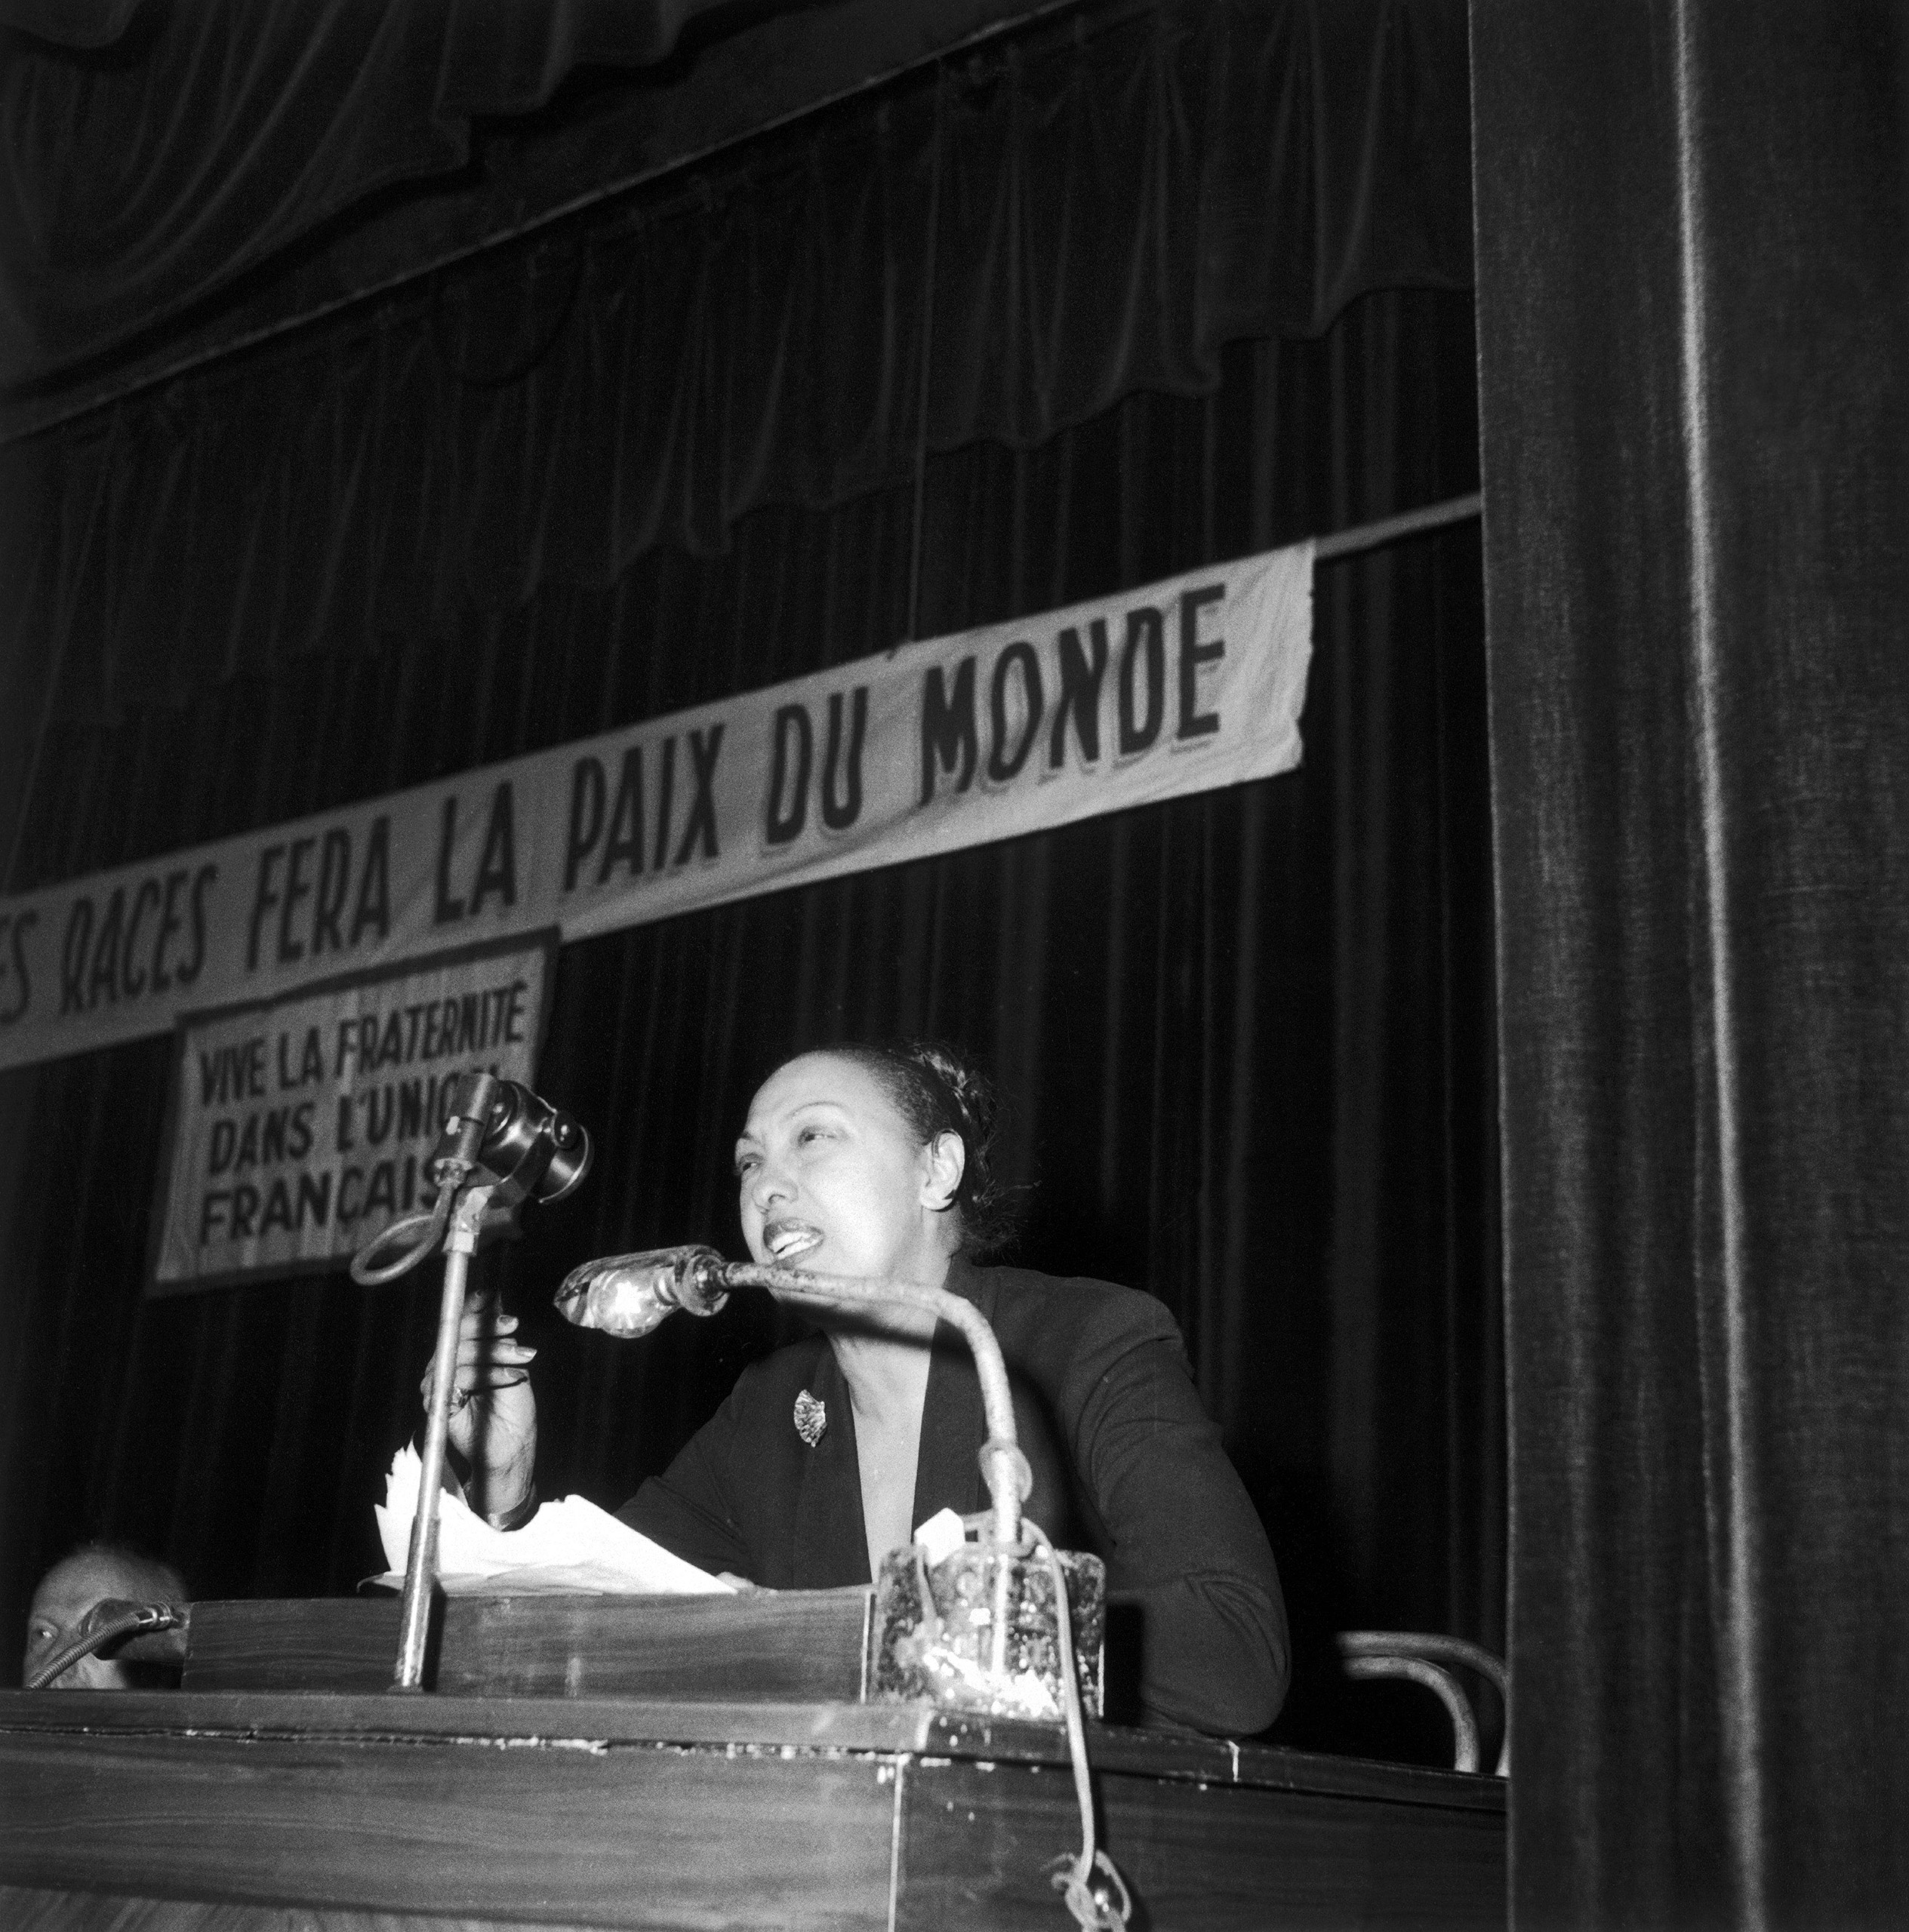 Josephine Baker gives a speech combating racism during an meeting organized by the International League Against Racism, at the Palais de la Mutualite in Paris, 1953.